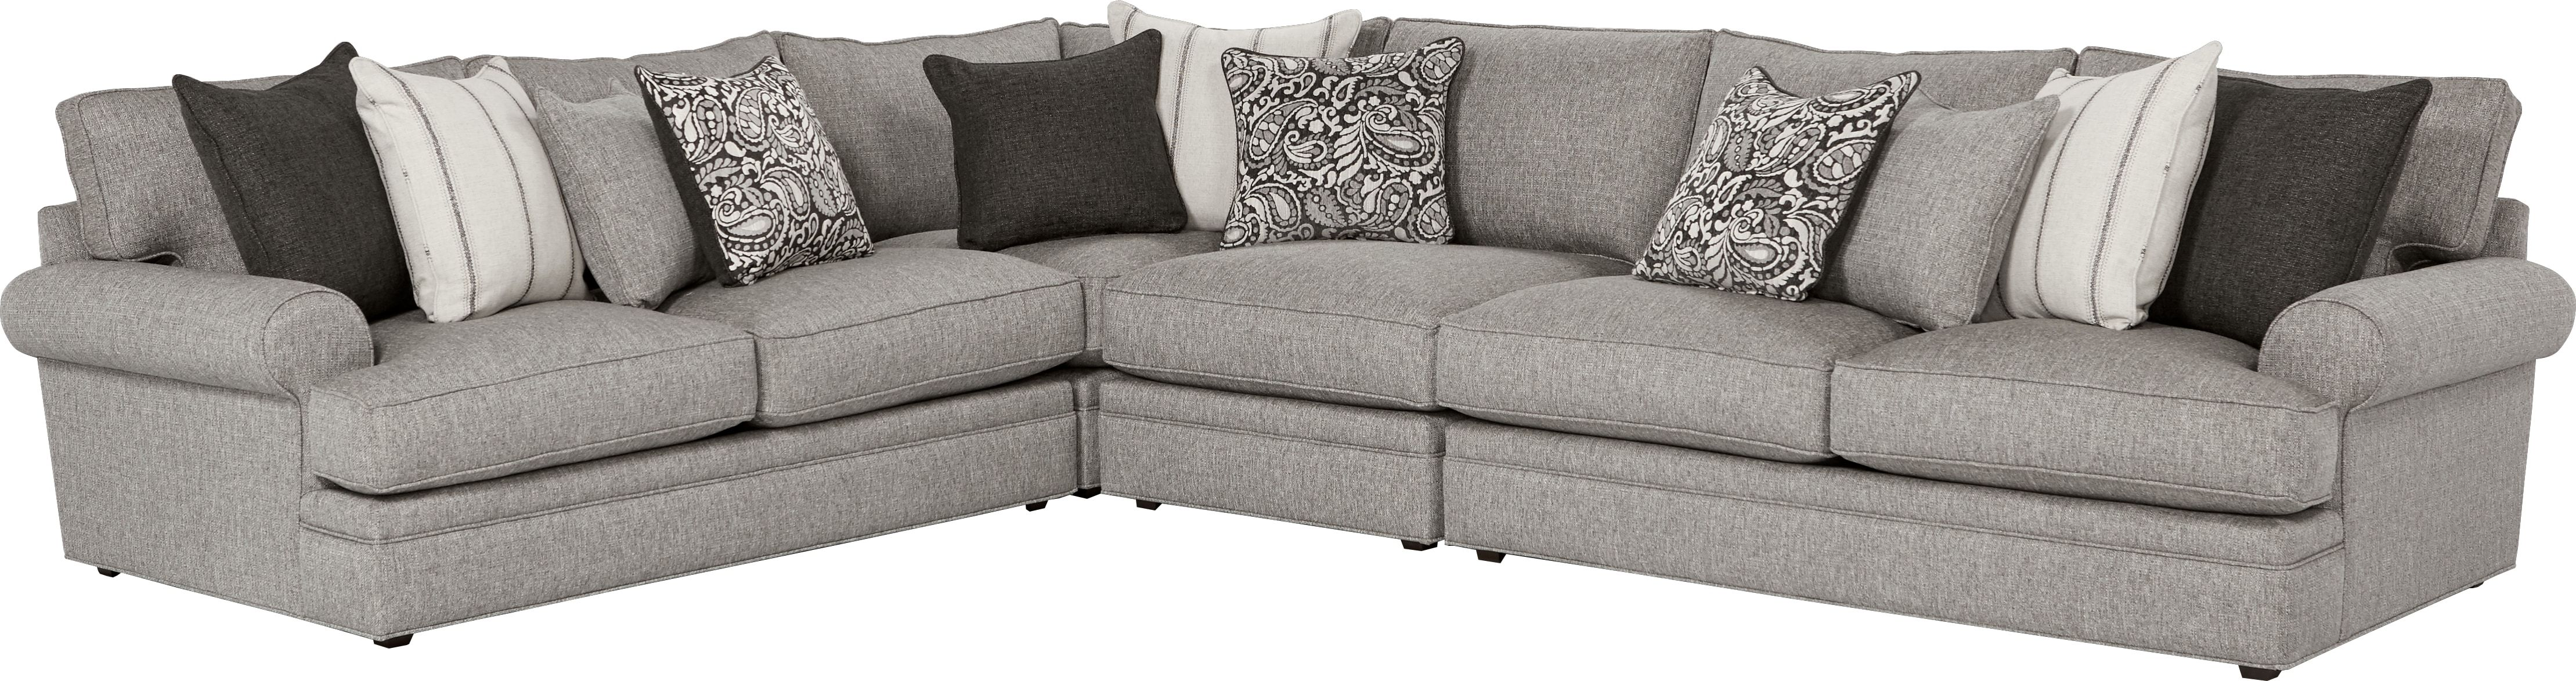 Magnificent Cindy Crawford Home Lincoln Square Gray 4 Pc Sectional Creativecarmelina Interior Chair Design Creativecarmelinacom